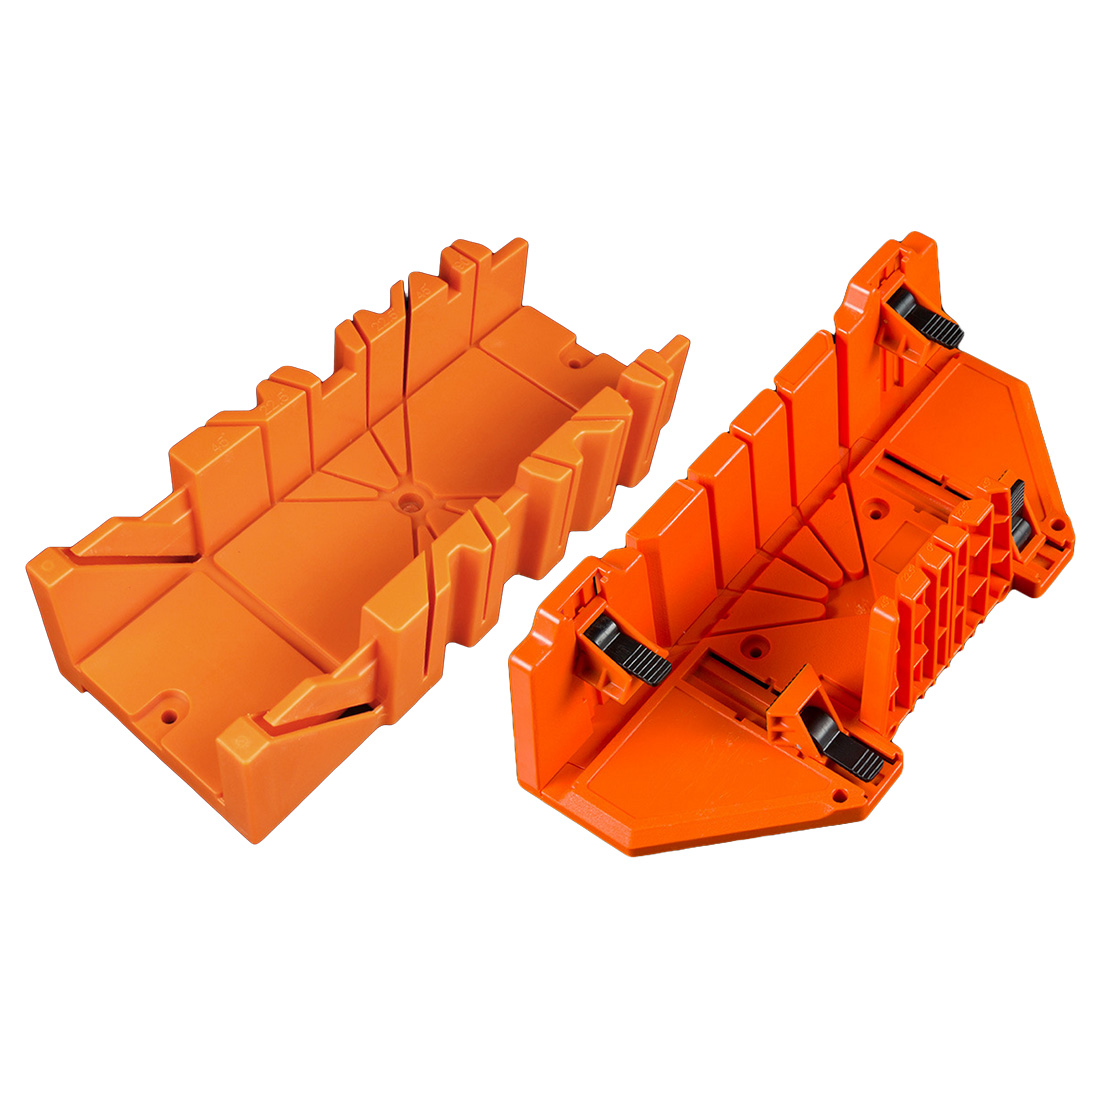 45/90 Degree Saw Guide Woodworking Multifunctional Miter Saw Box Cabinet 12/14inch ABS Plastic Miter Box Orange